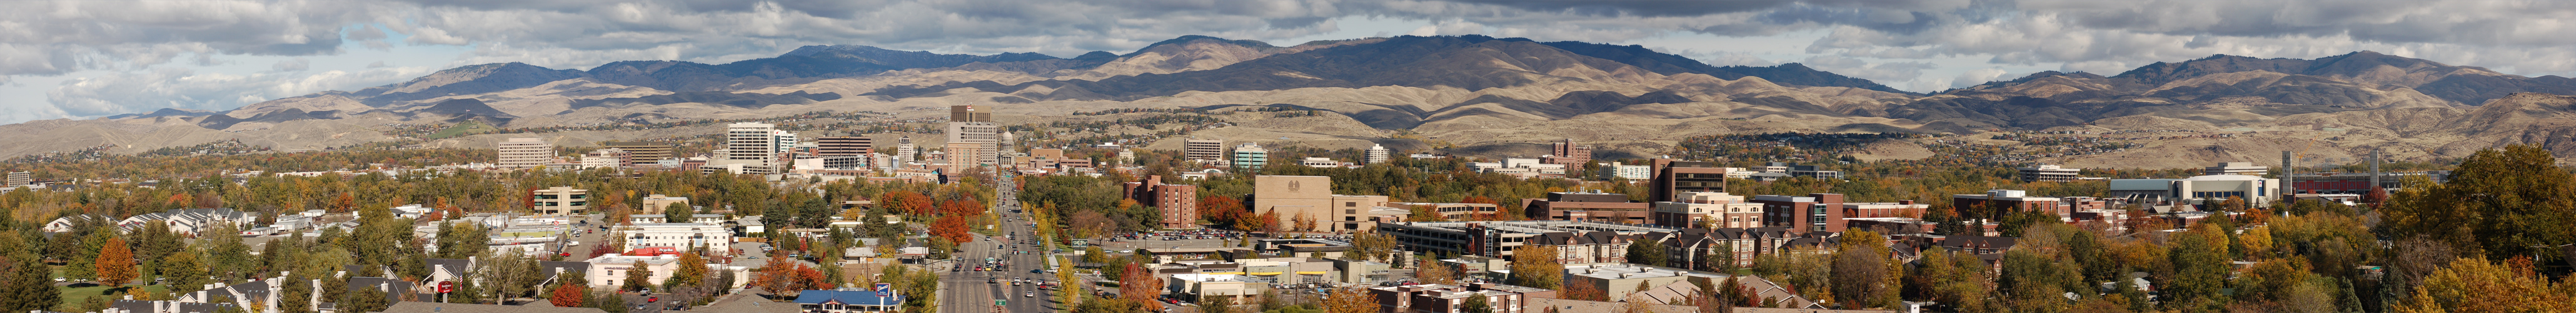 Downtown Boise in Fall by eRality